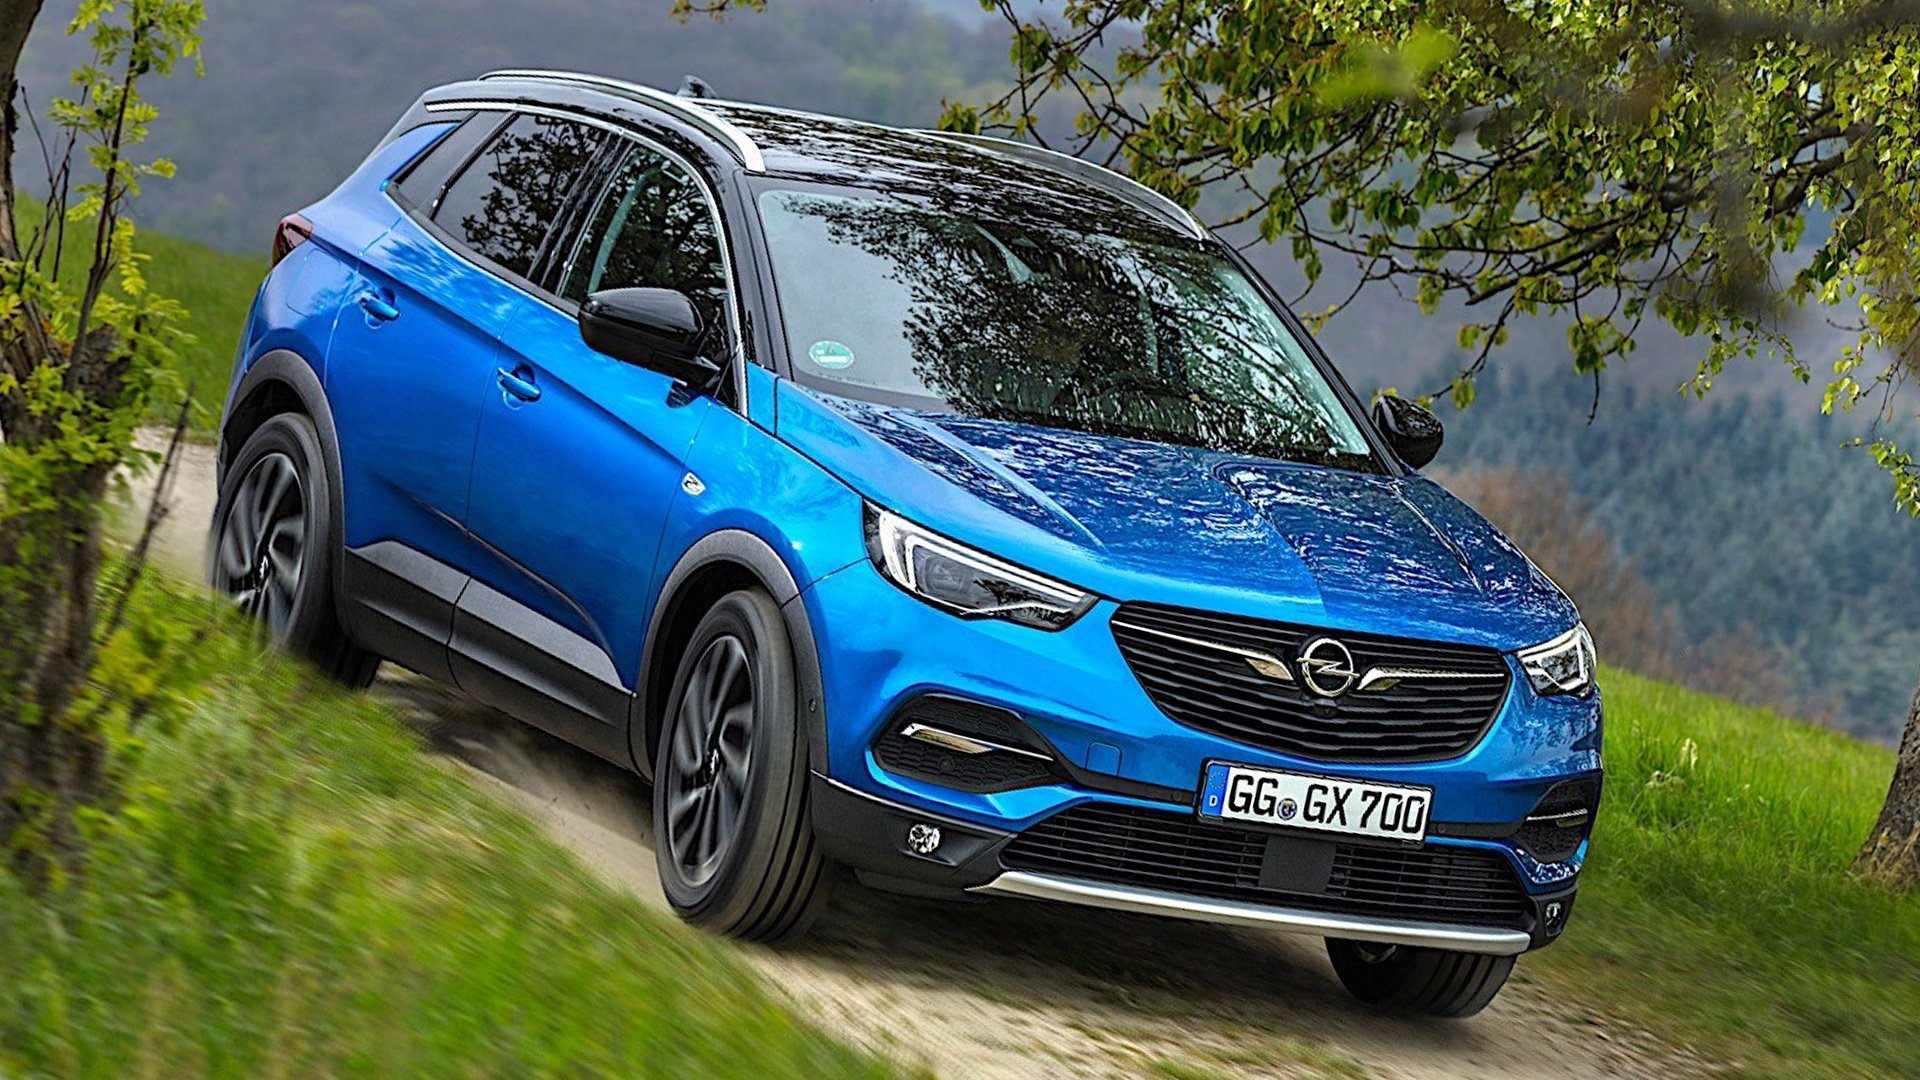 New 2019 Opel Grandland X Wallpaper HD Desktop